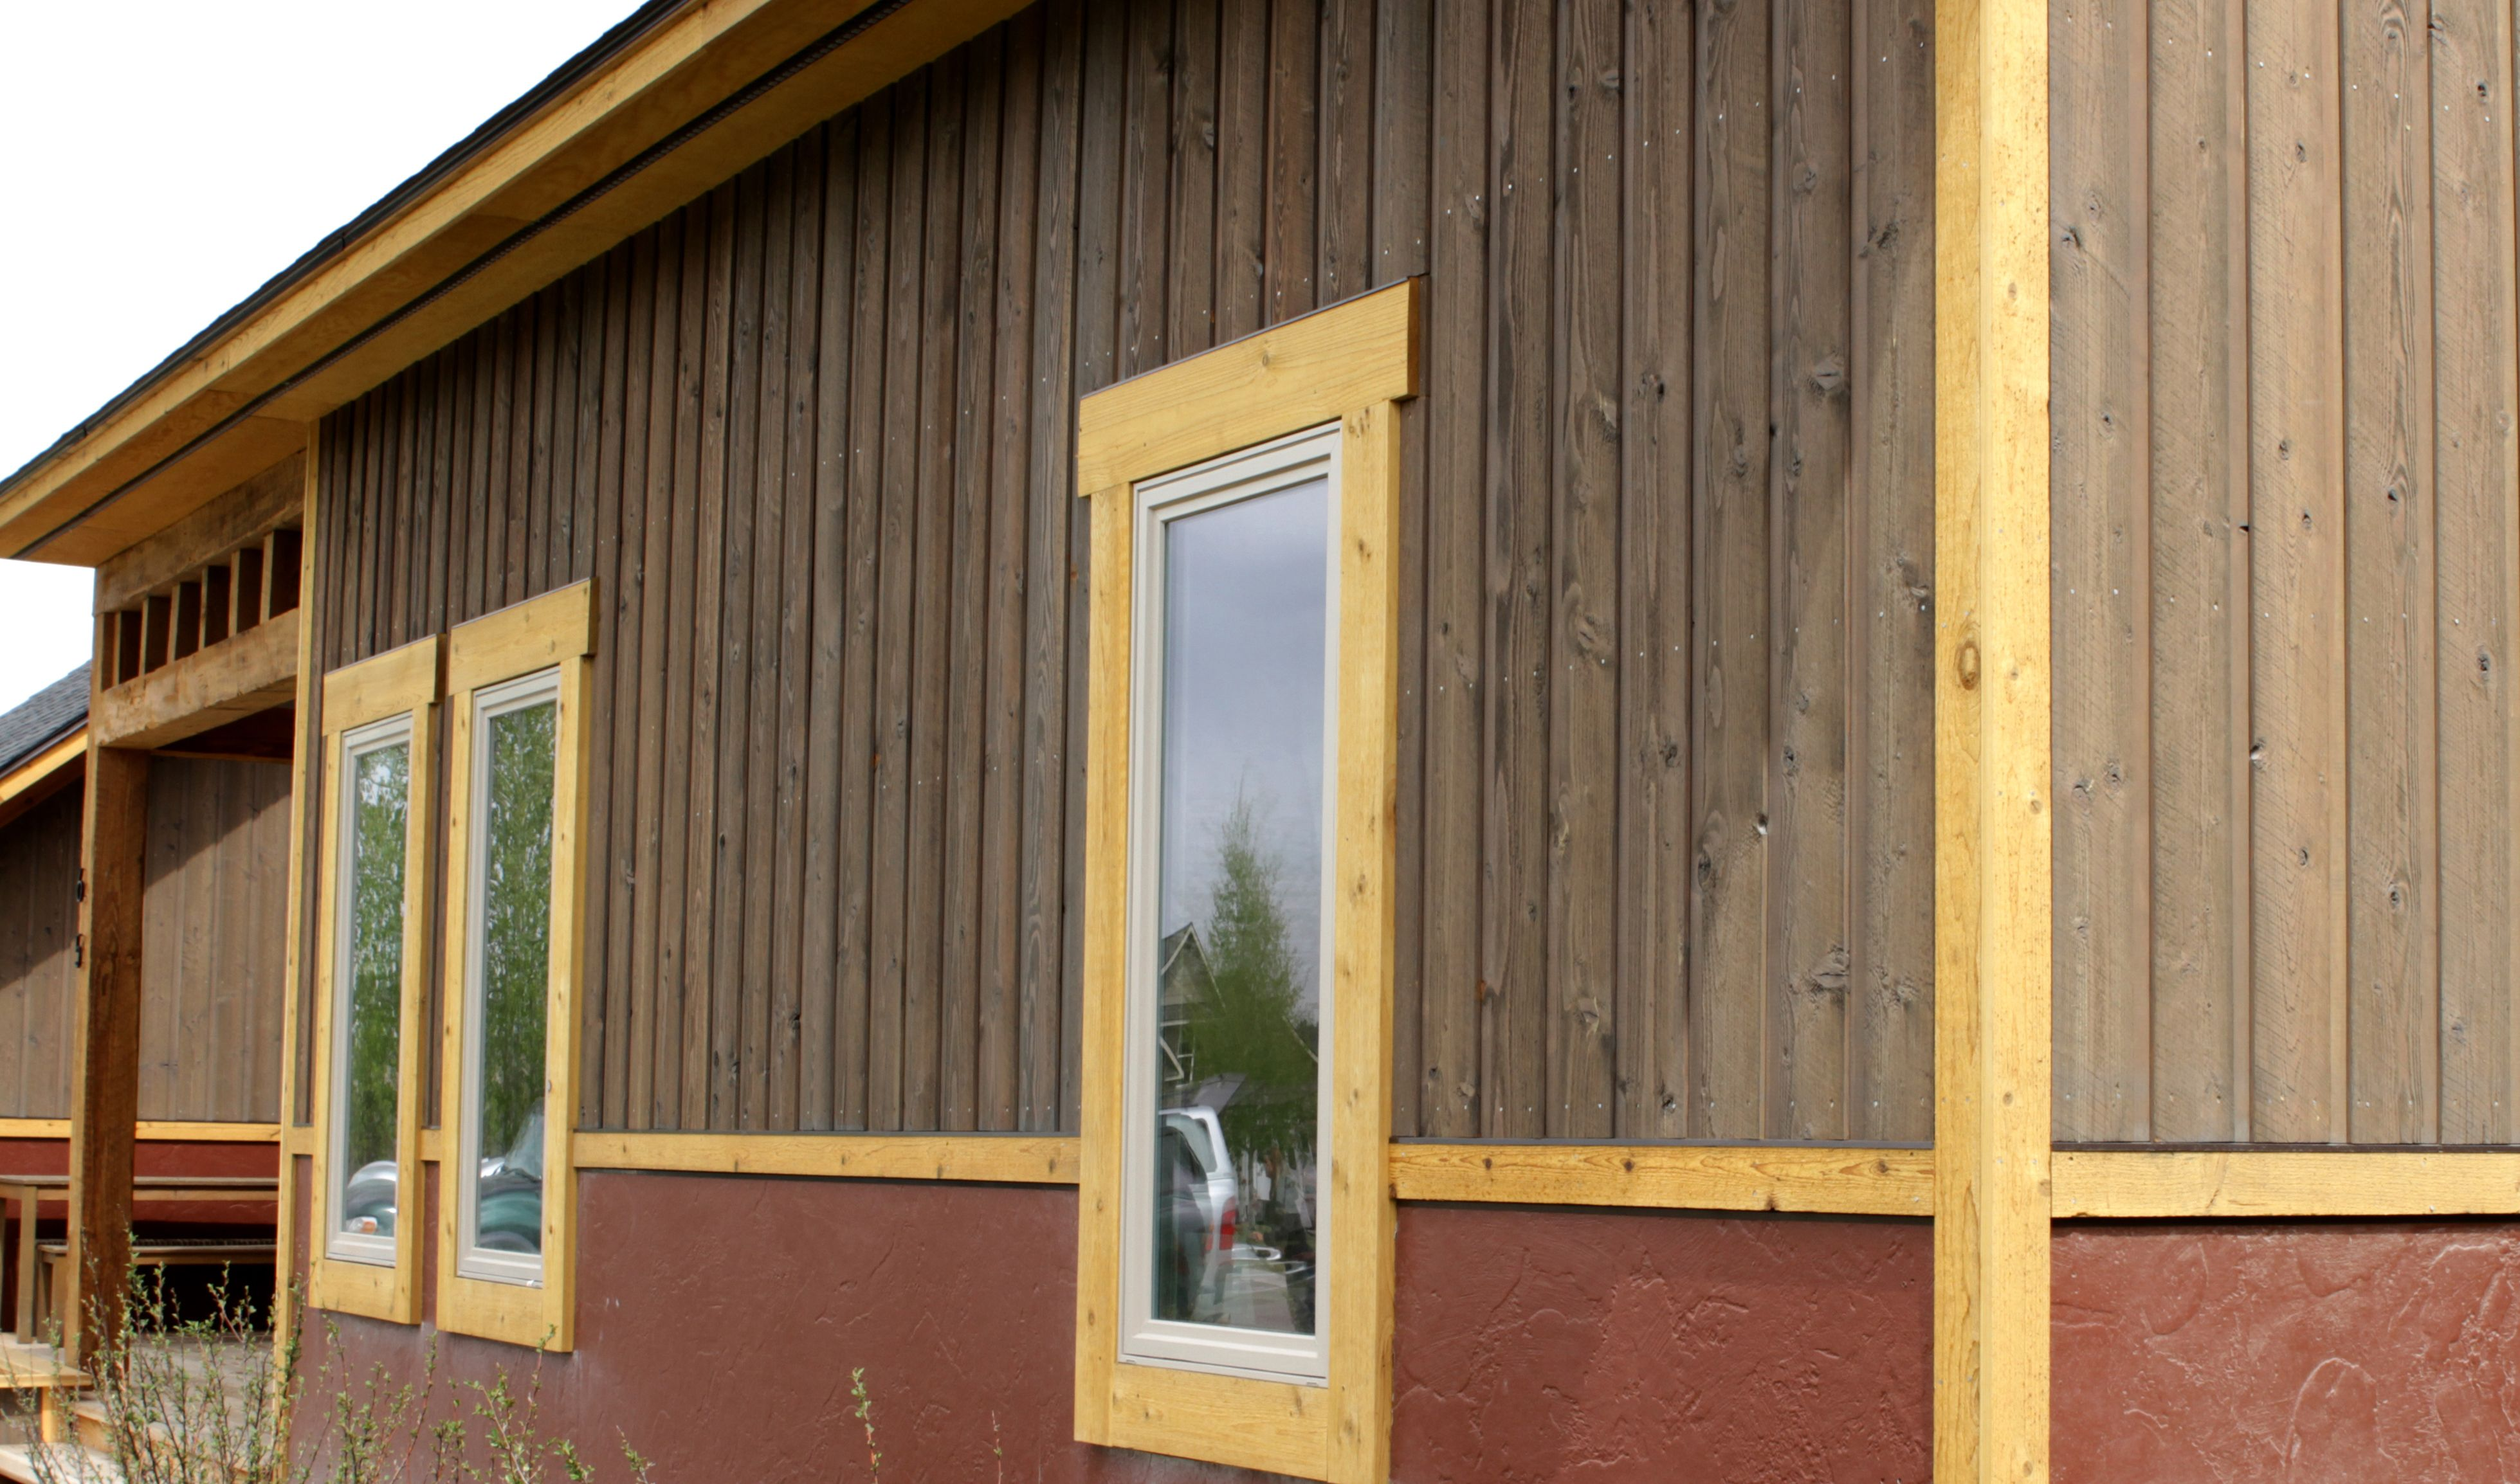 Yeshaus siding lp smart side engineered wood siding for Lp engineered wood